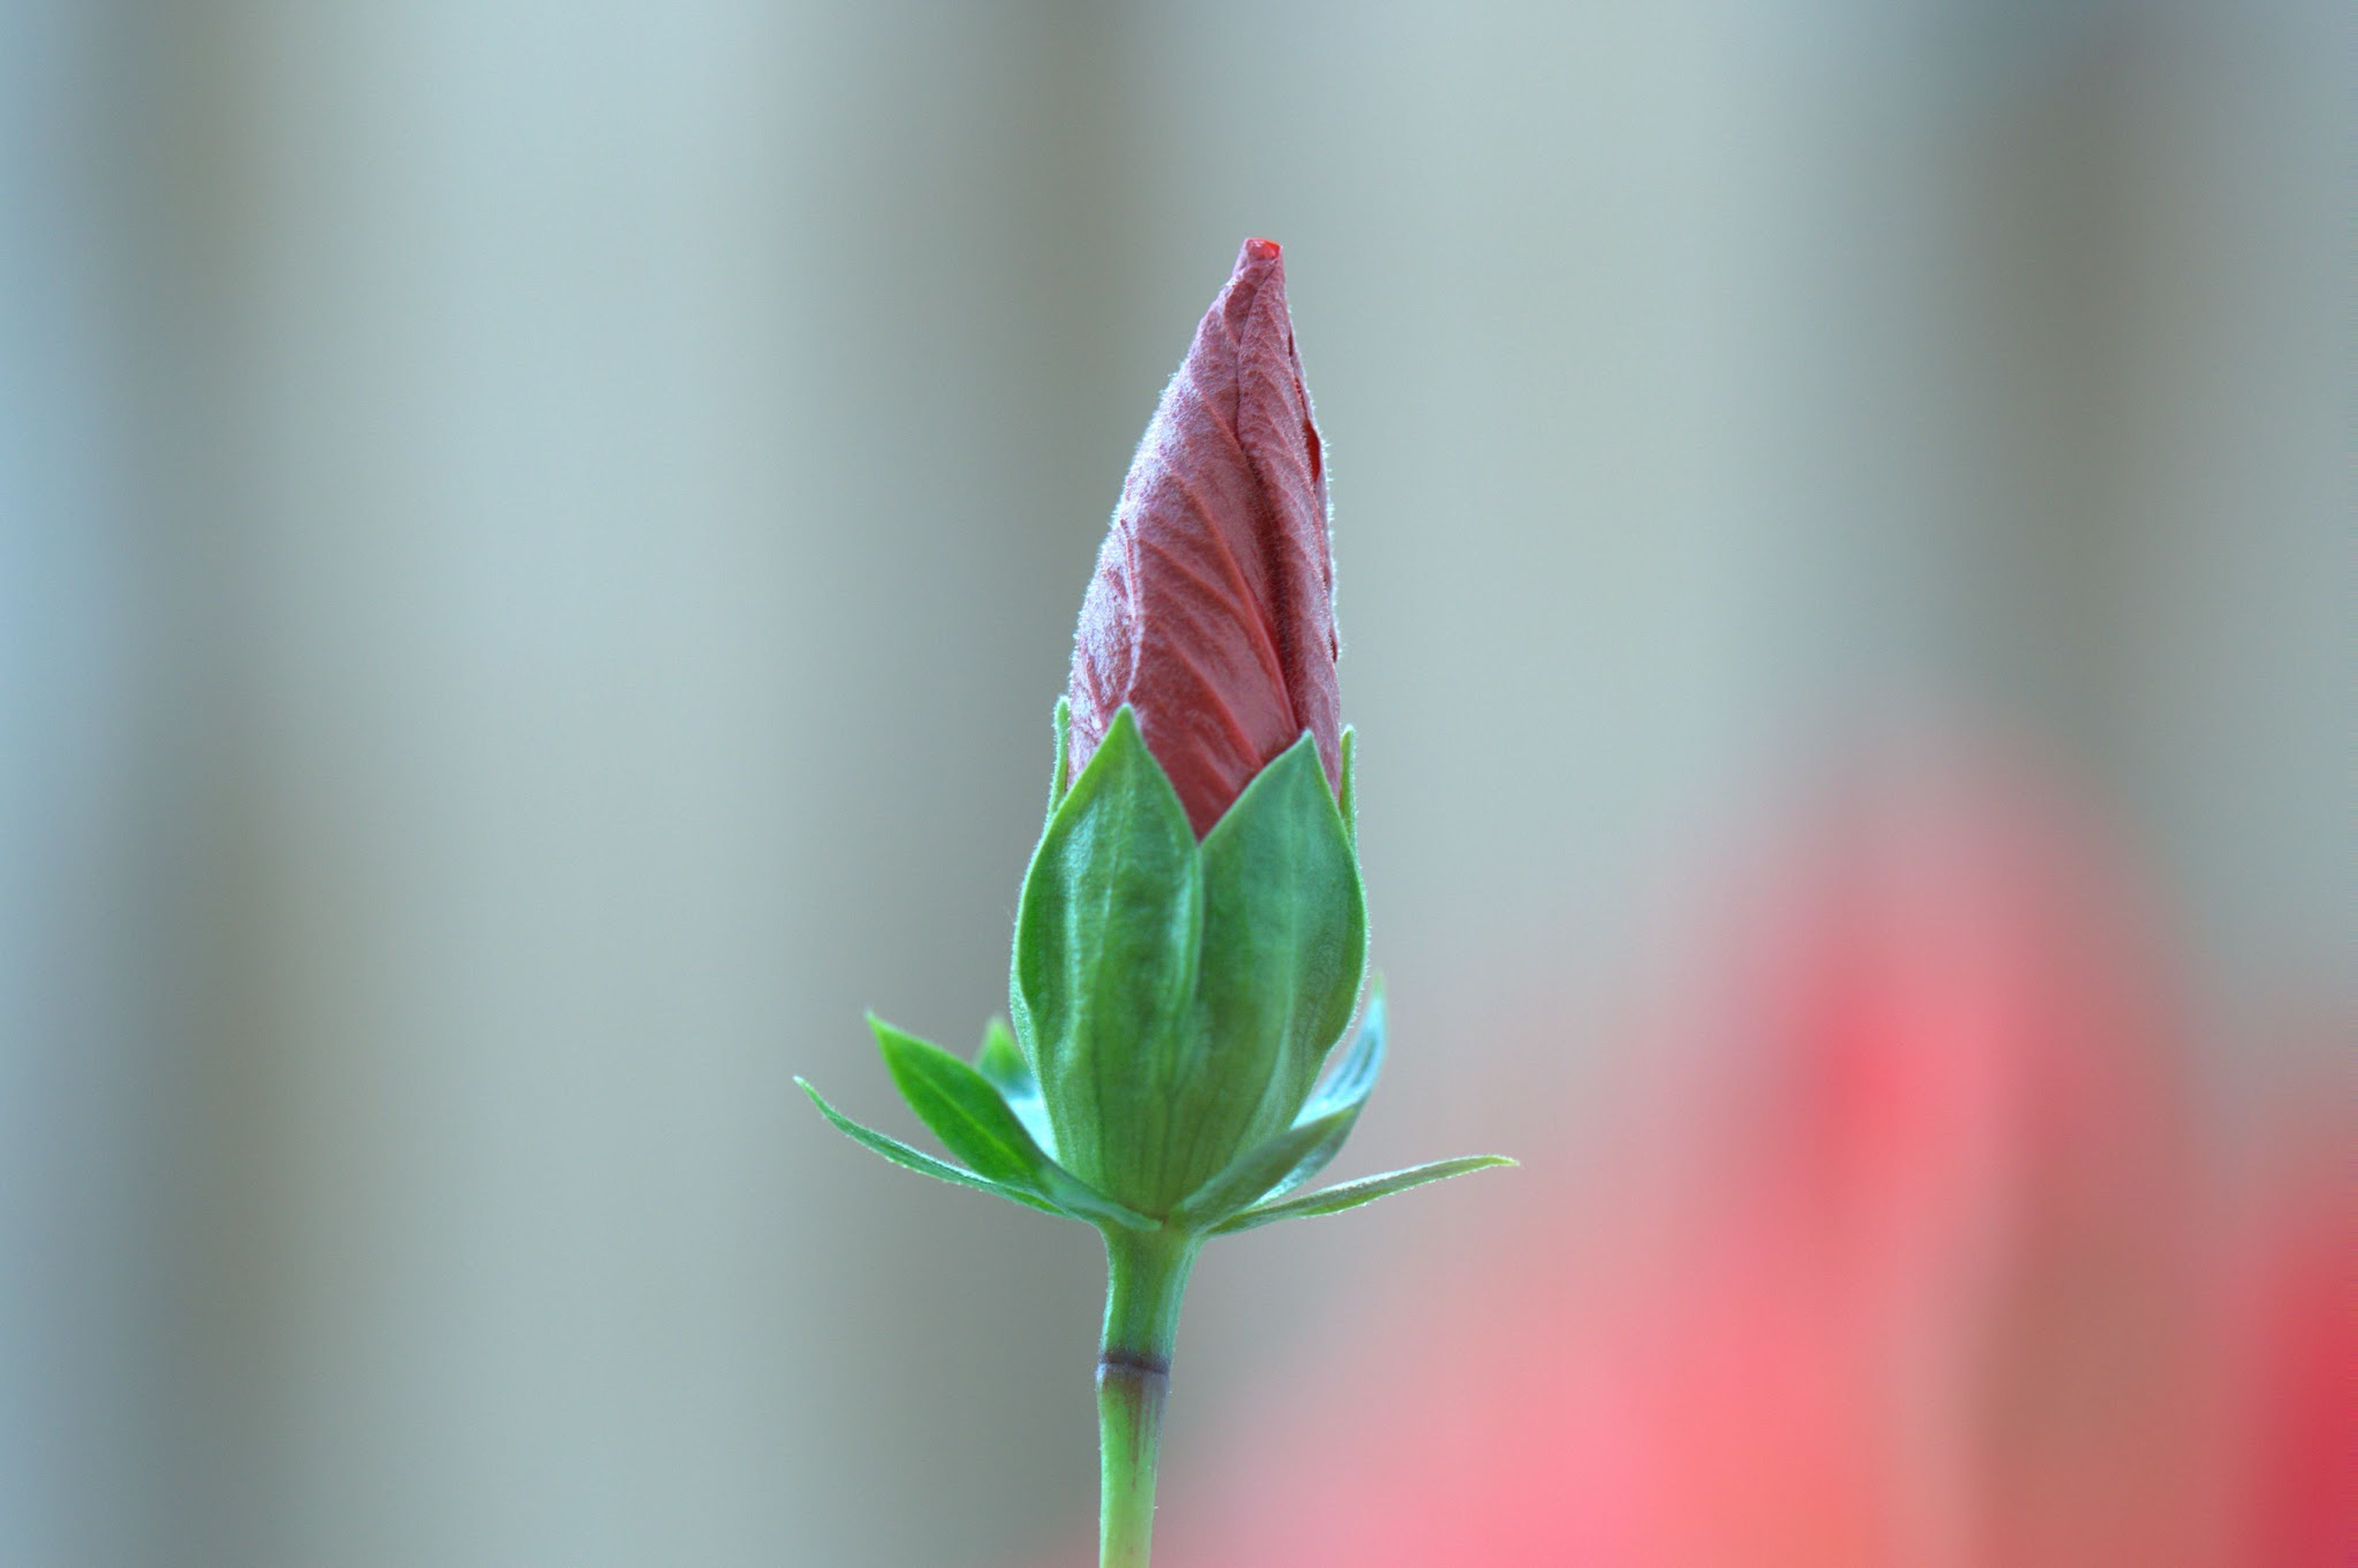 flower, focus on foreground, close-up, leaf, fragility, growth, red, petal, freshness, stem, plant, beauty in nature, nature, flower head, selective focus, bud, pink color, day, single flower, outdoors